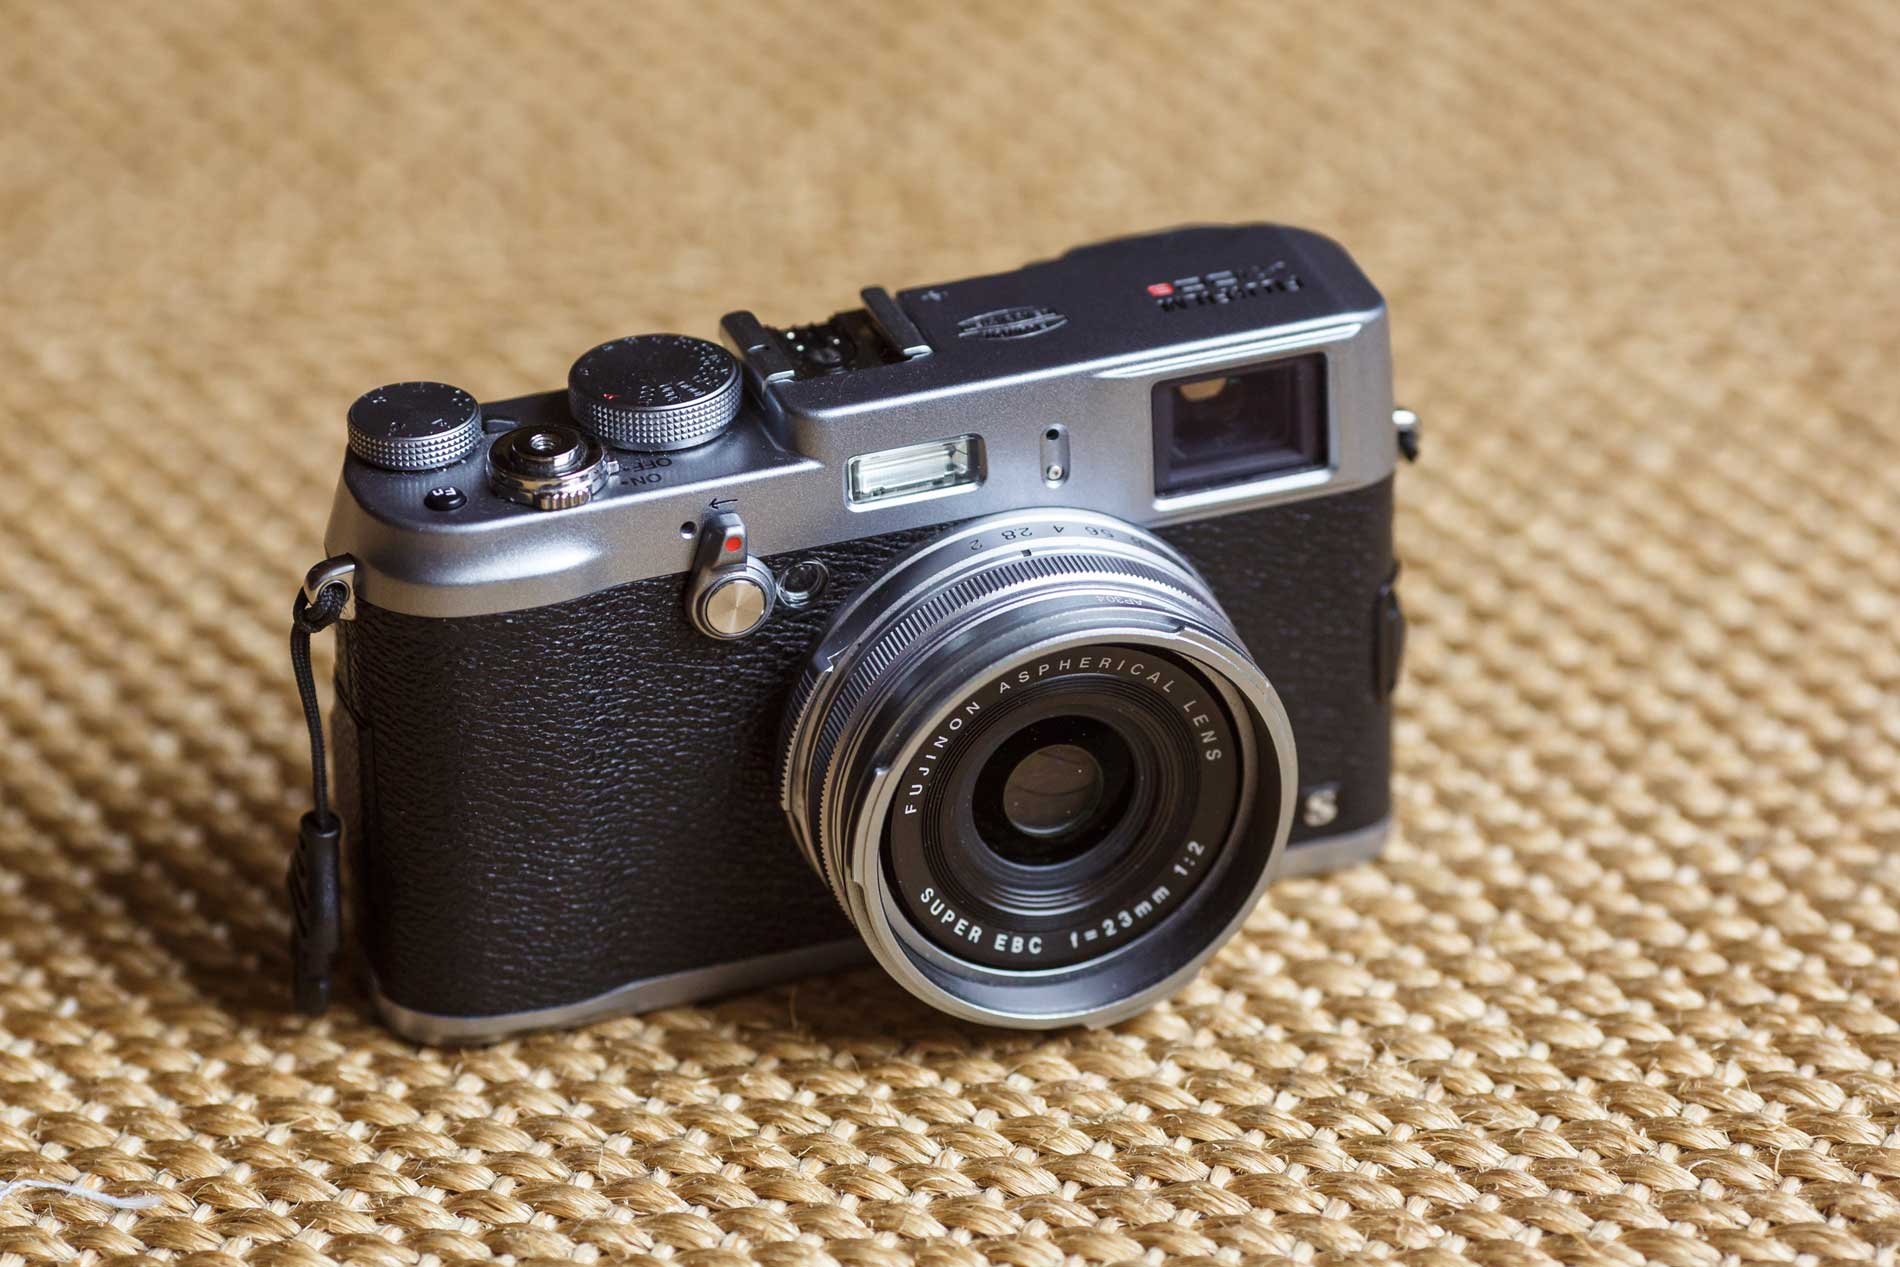 The [Fuji x100s](http://www.amazon.com/dp/B00AX12ZL8/ref=nosim&tag=toolsandtoys-20)